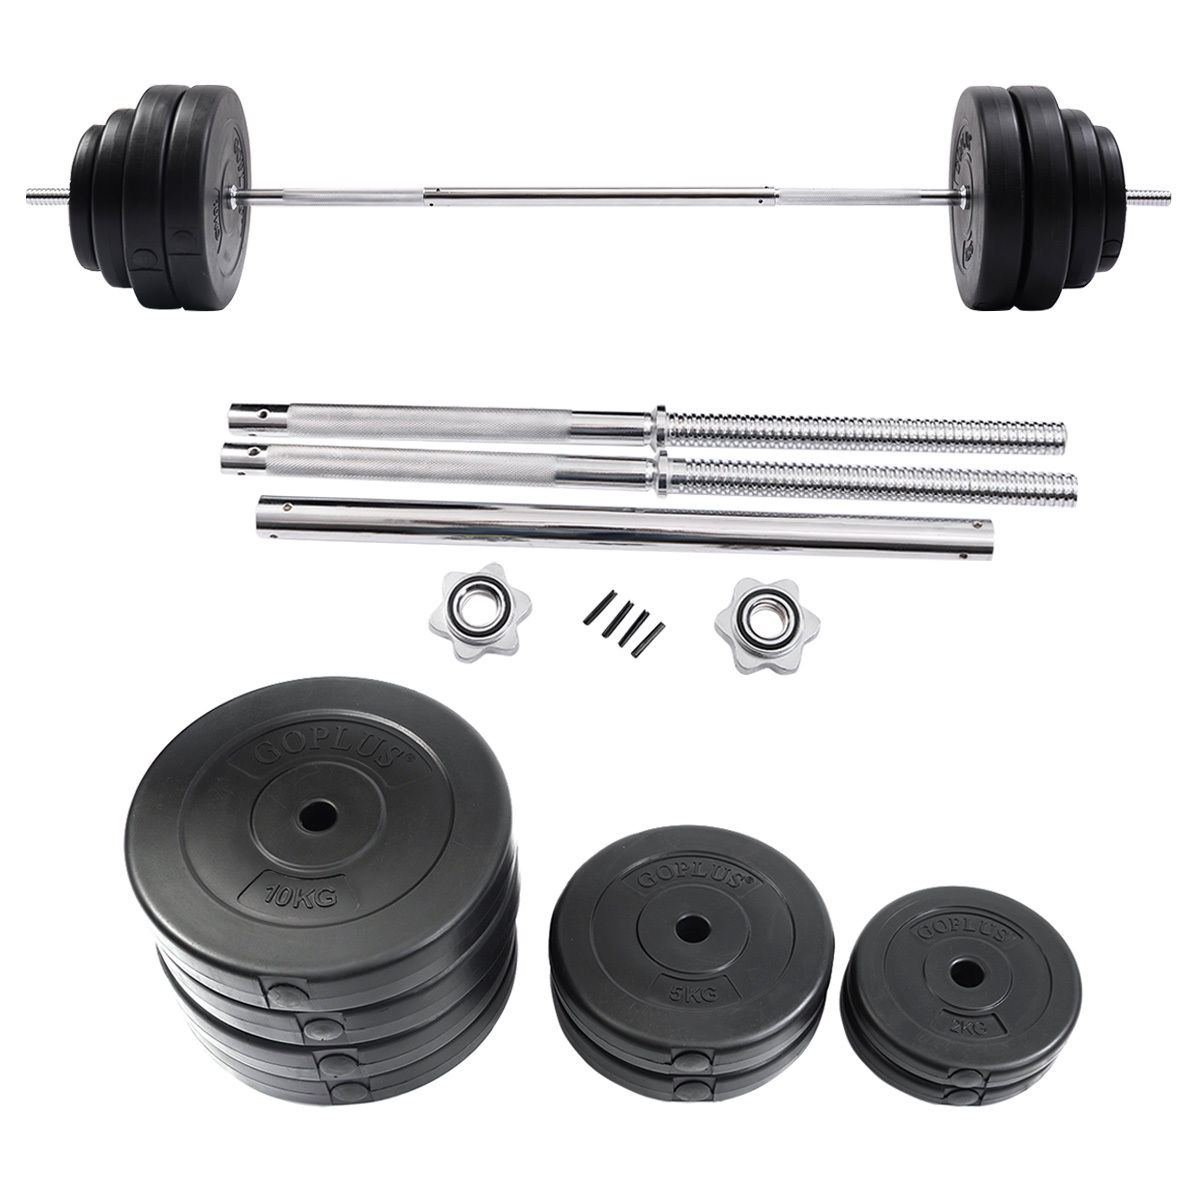 Goplus 132 LB Barbell Dumbbell Weight Set Gym Lifting Exercise Curl Bar Workout by dumbbells